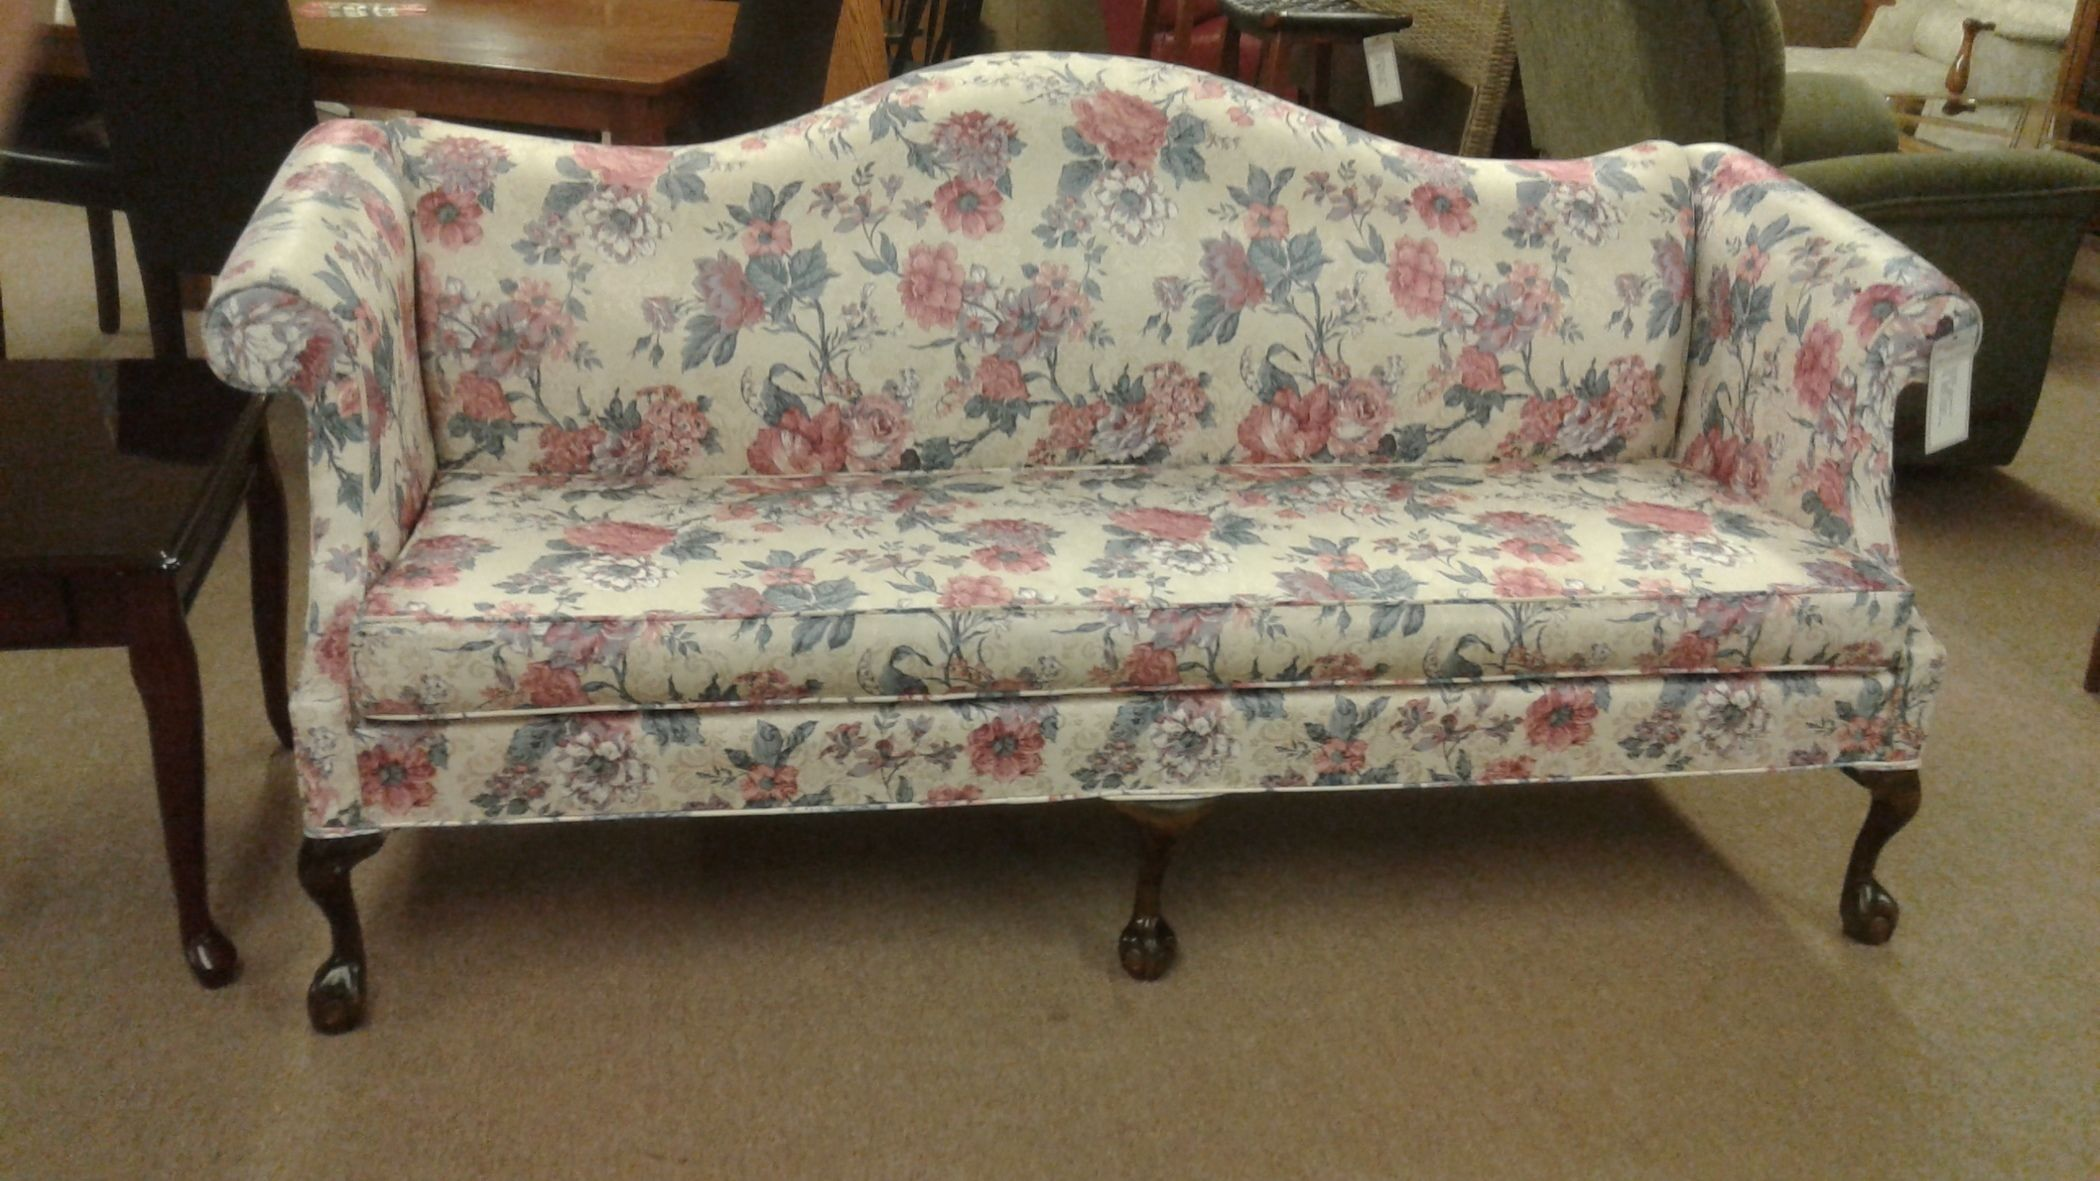 Queen Anne Camelback Sofa Delmarva Furniture Consignment